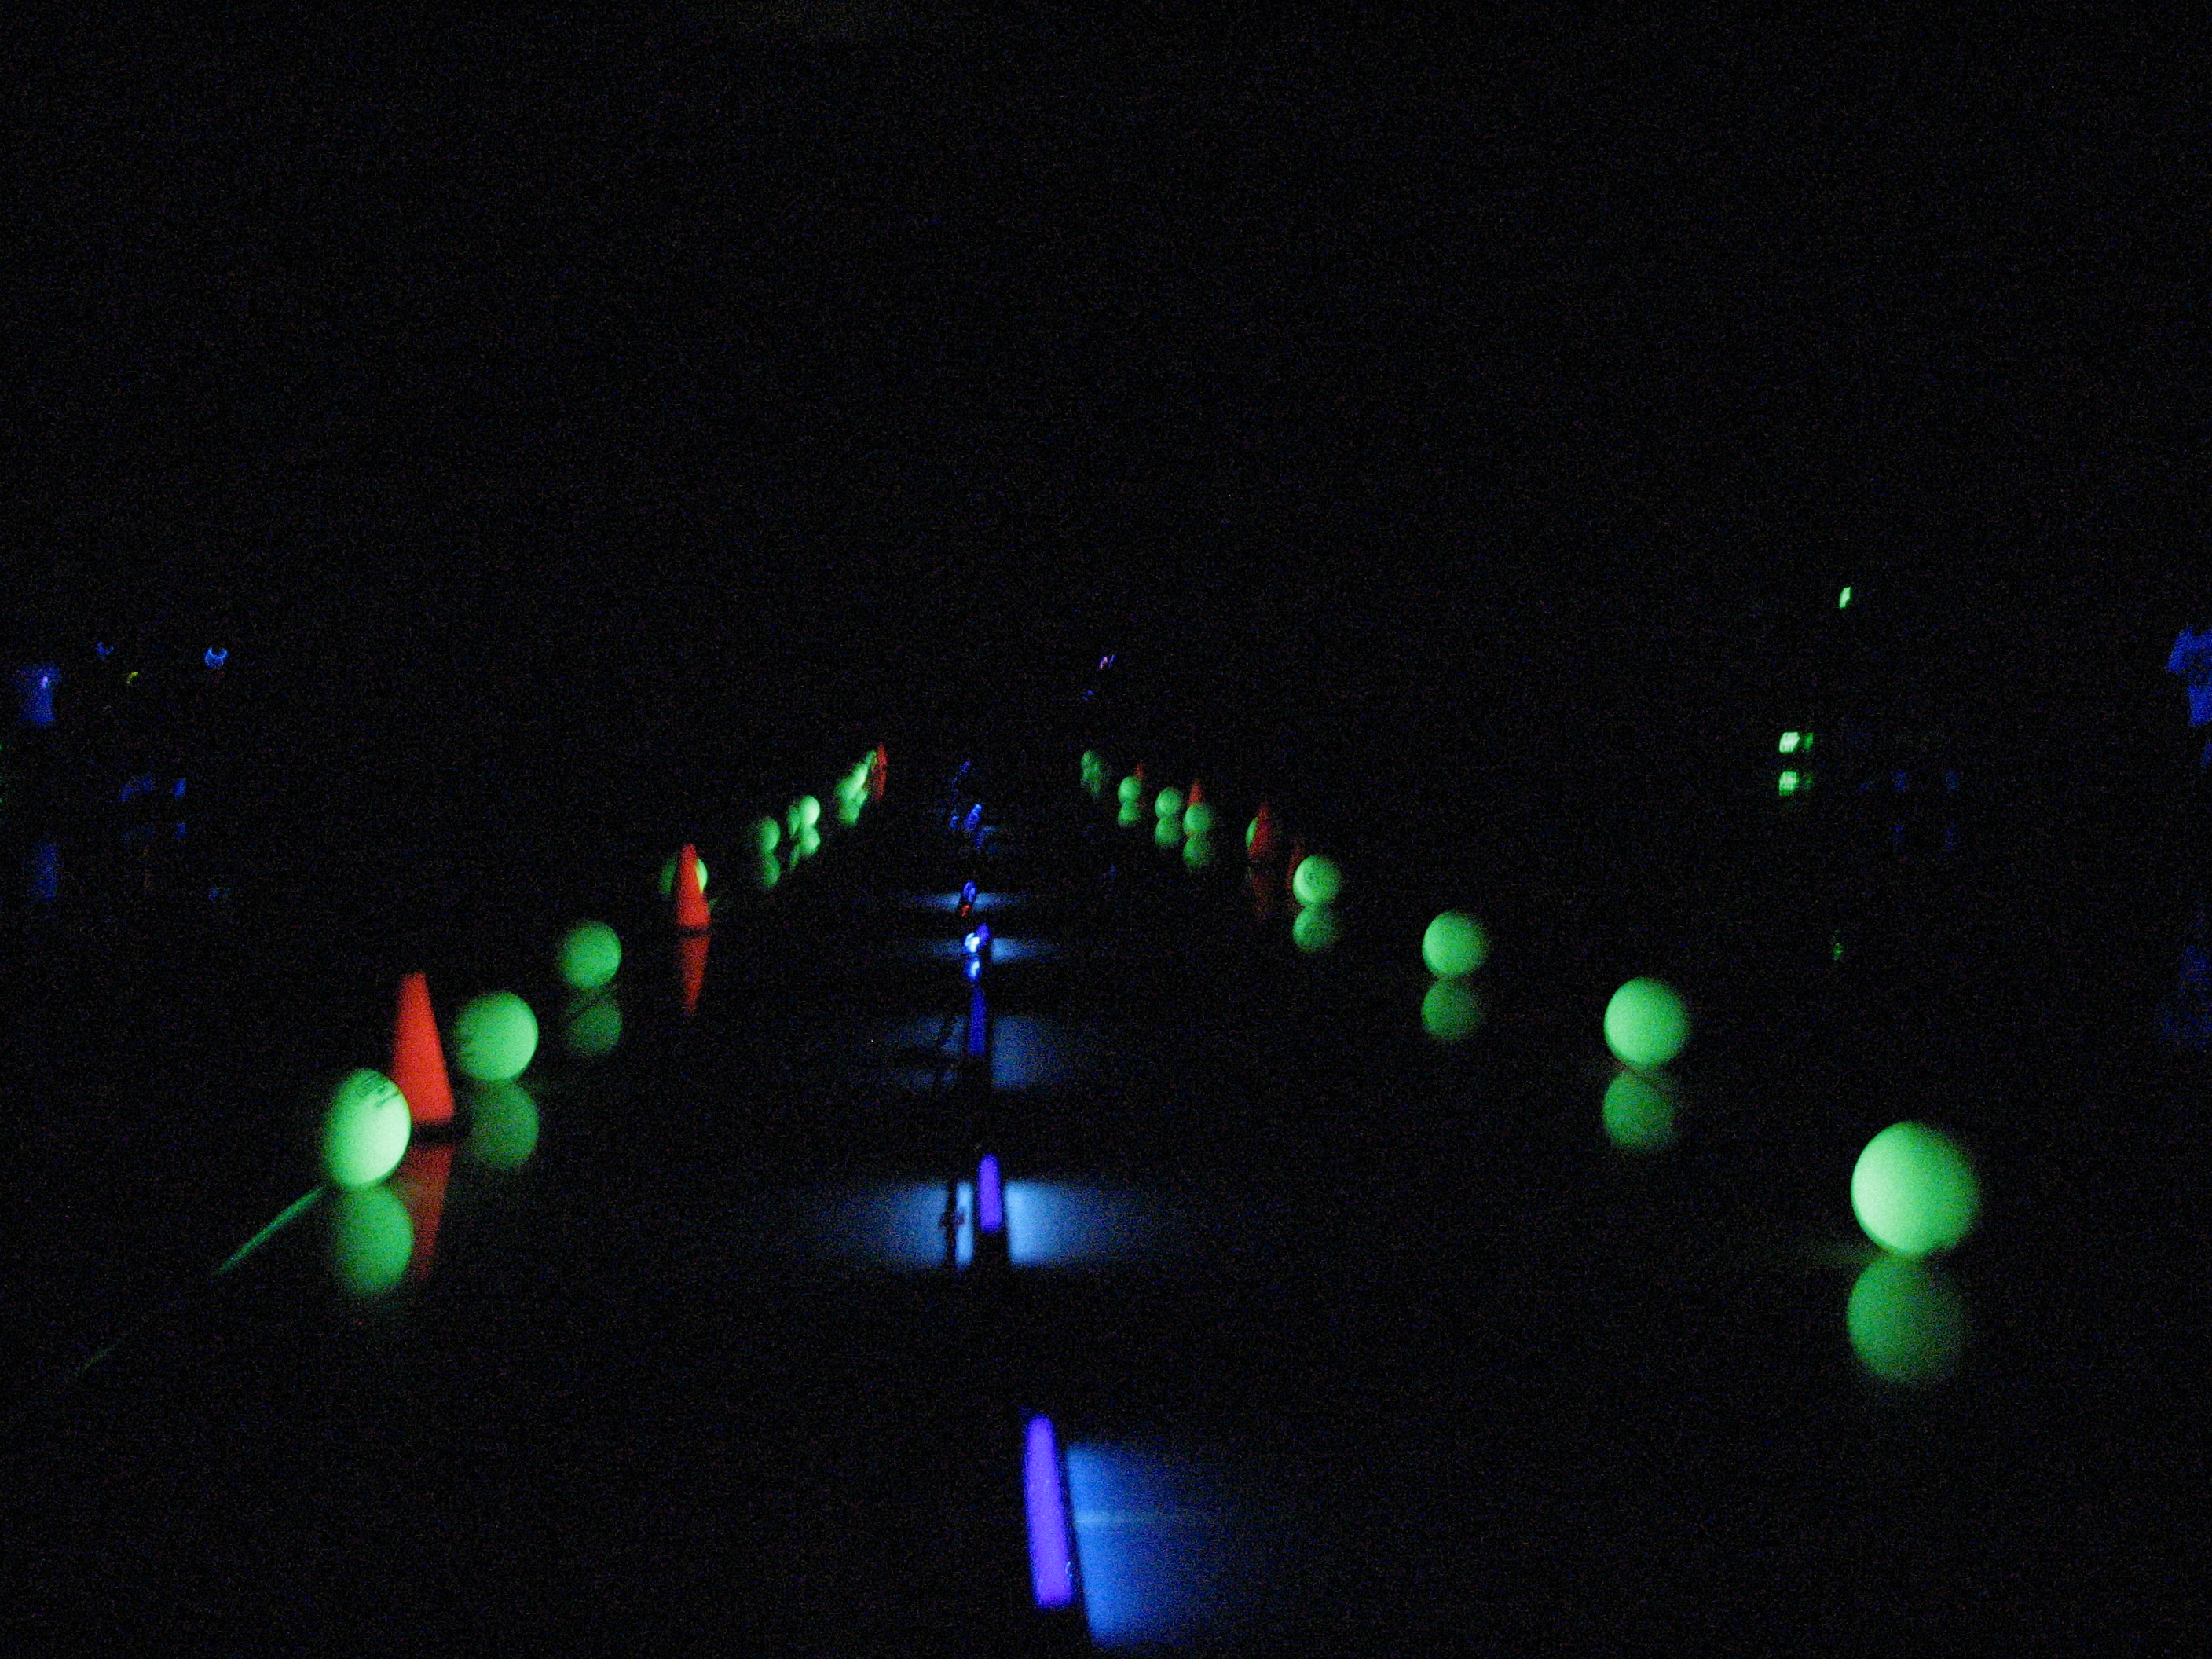 Poway Teen Programming Series 2017 2018 Glow in the Dark Dodgeball Meadowbrook Gymnasium Poway Community Park Fun Glowsticks Games